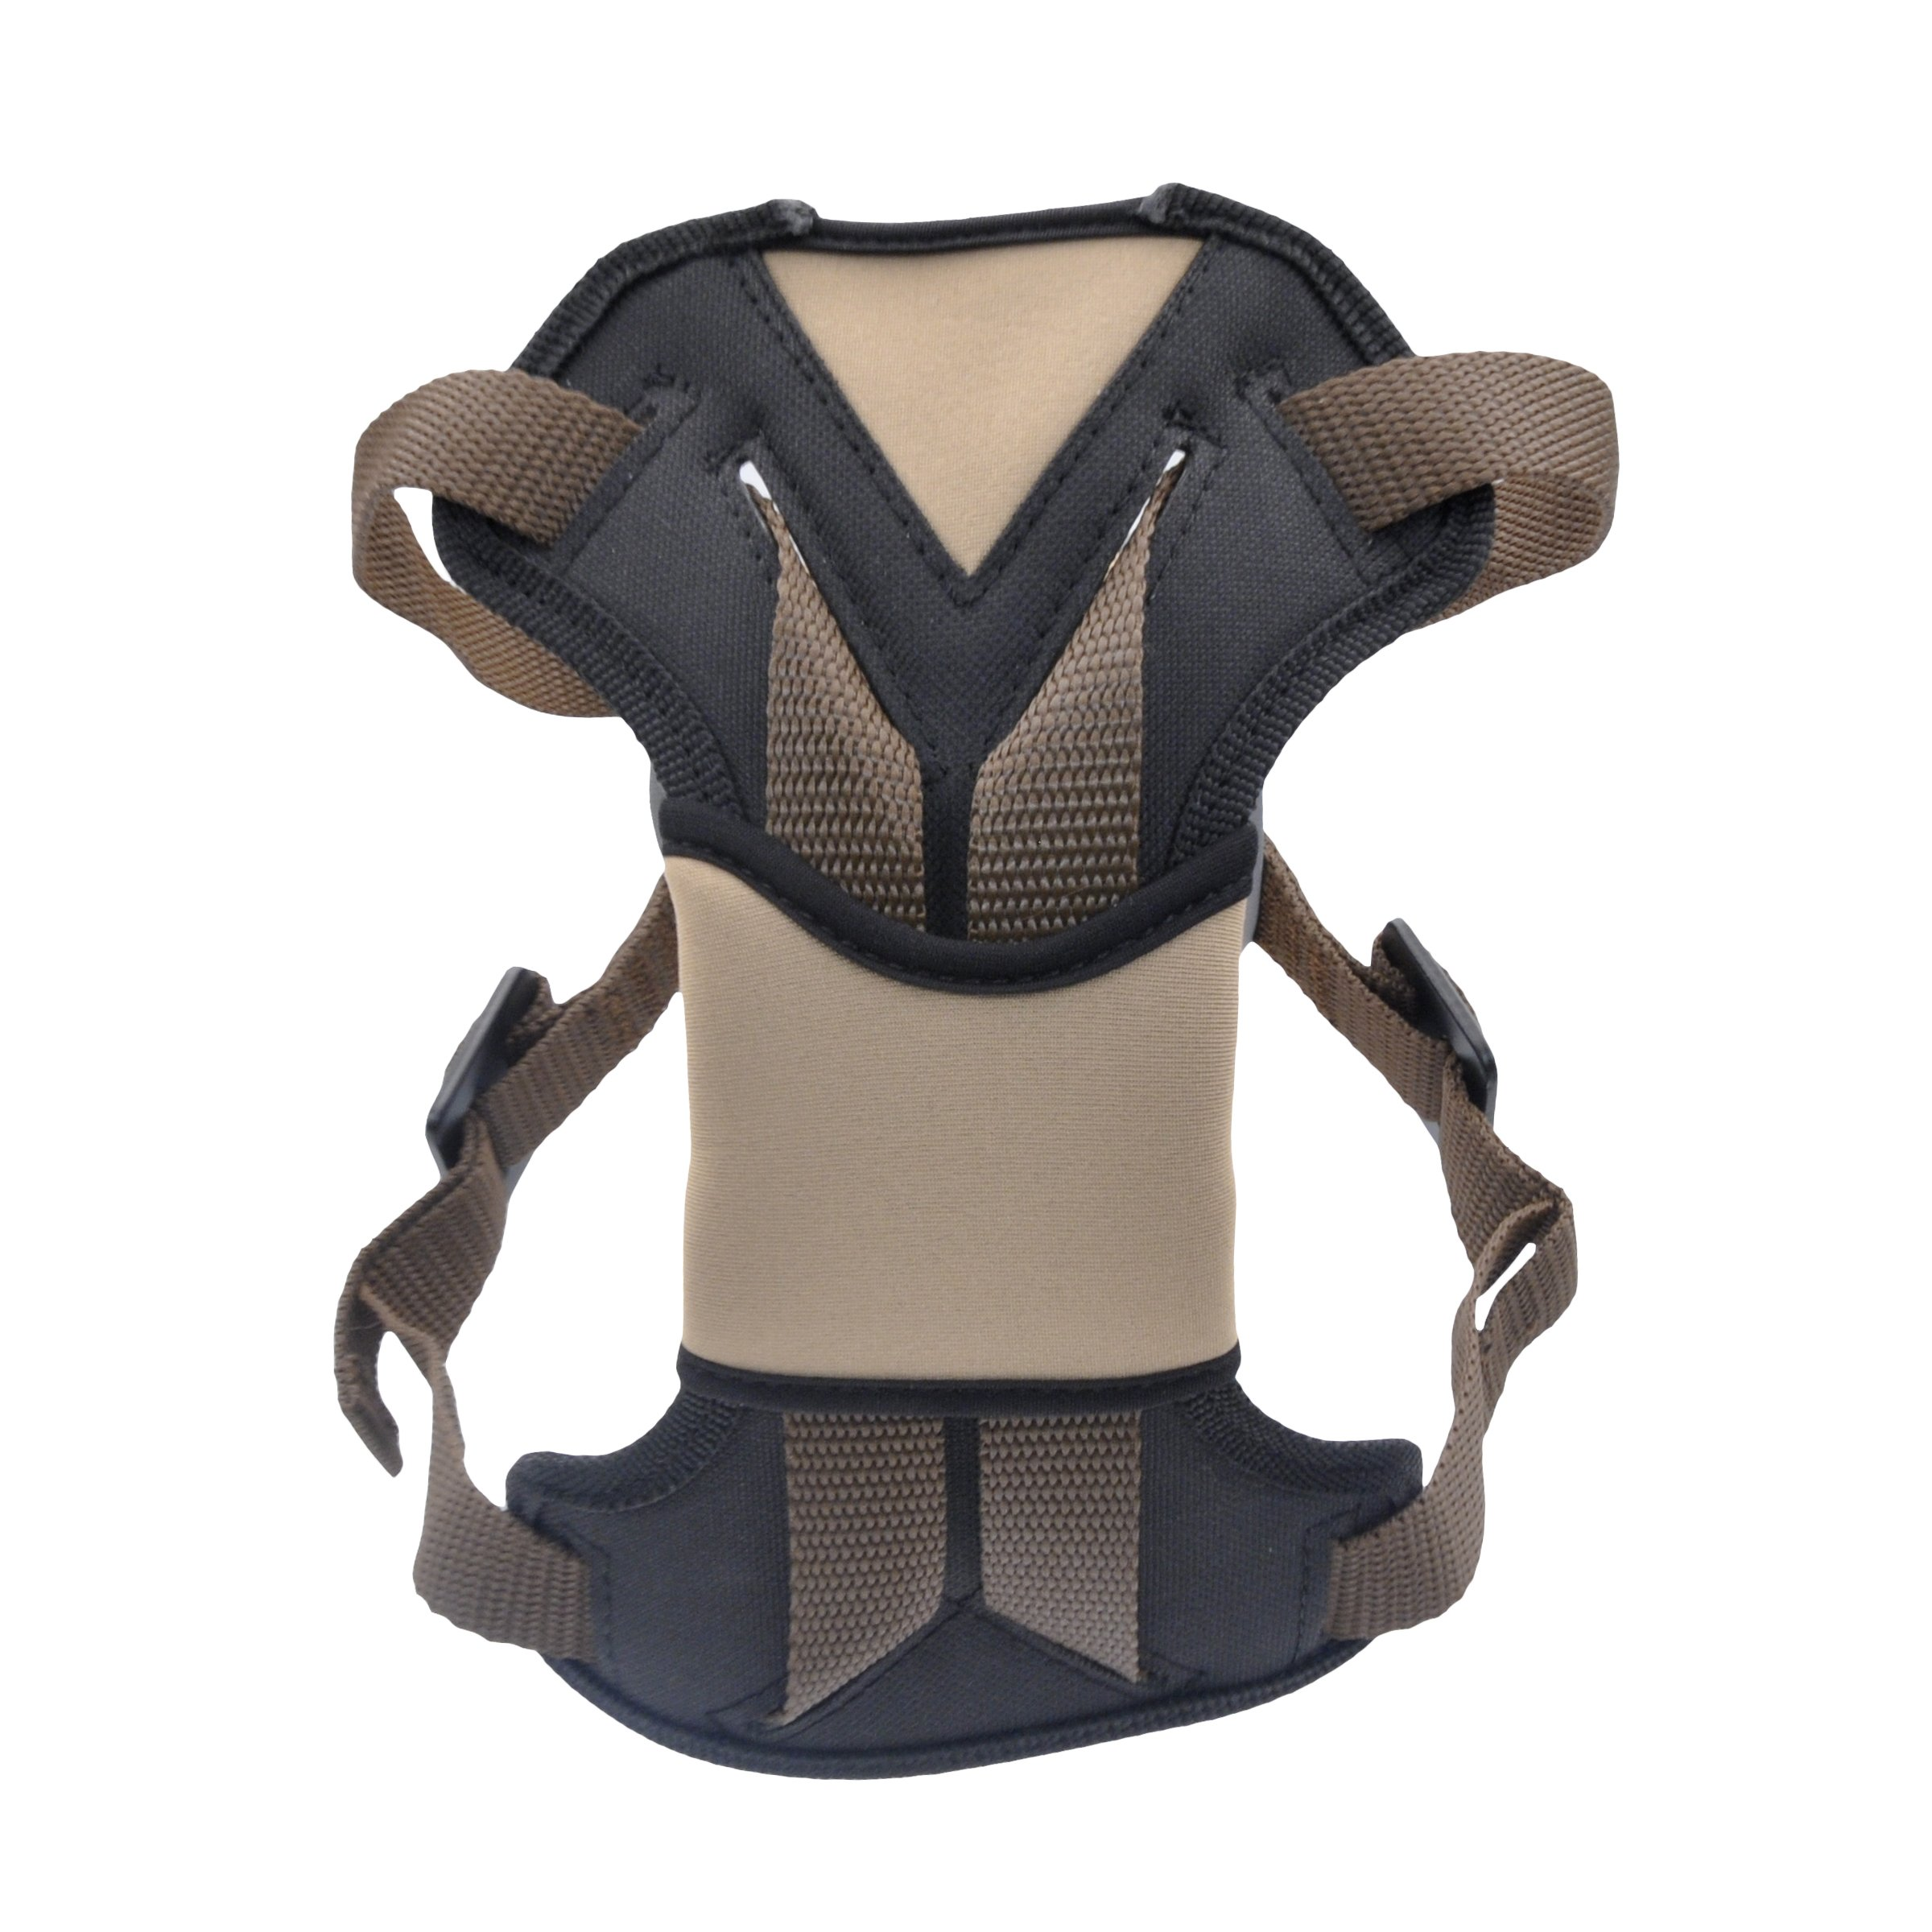 Bergan Safety Auto Harness with Tether, Medium, Brown by Bergan